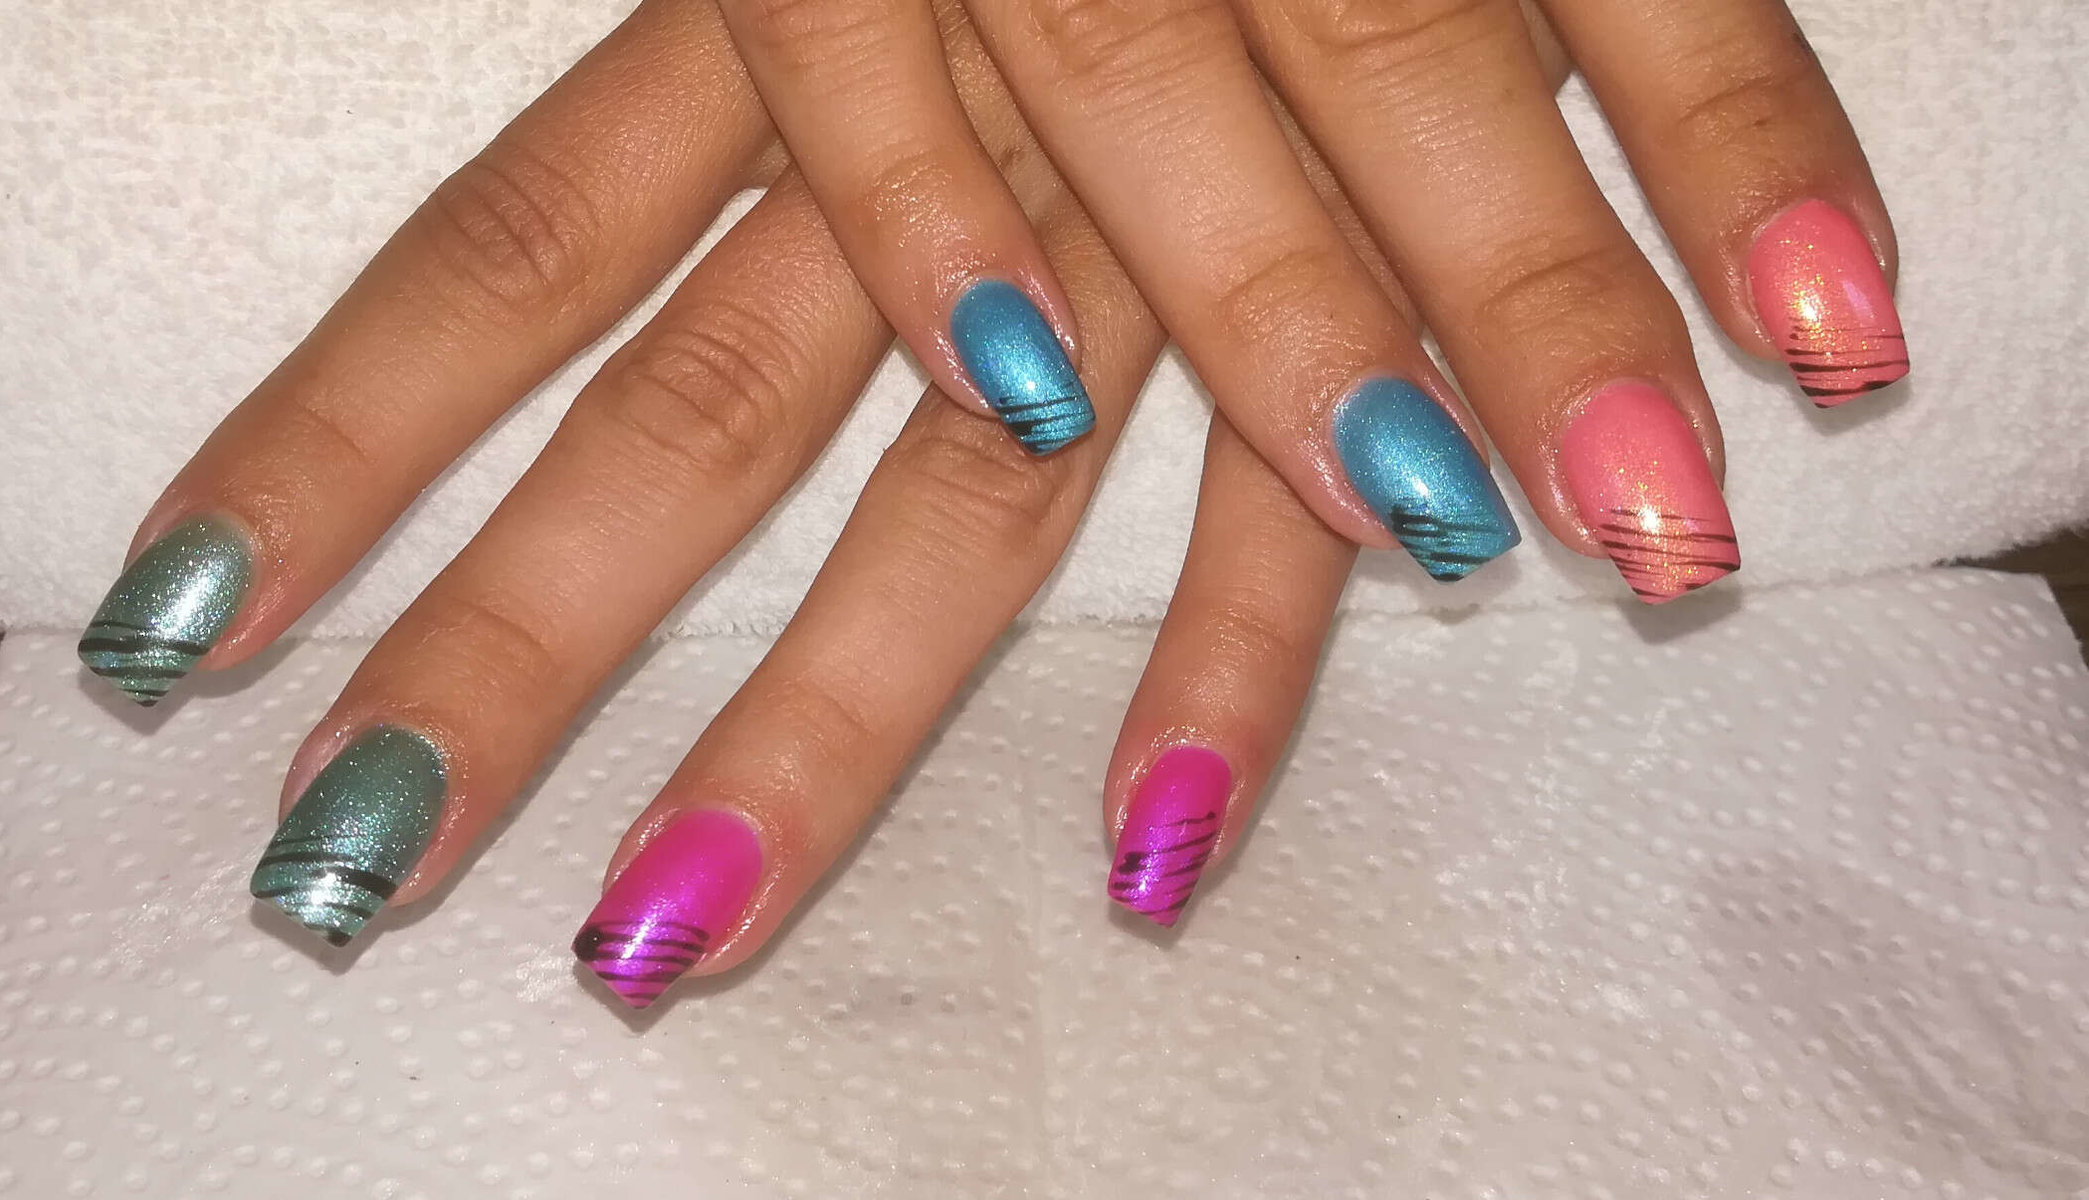 farbenfrohes Naildesign von Melinda's Nails